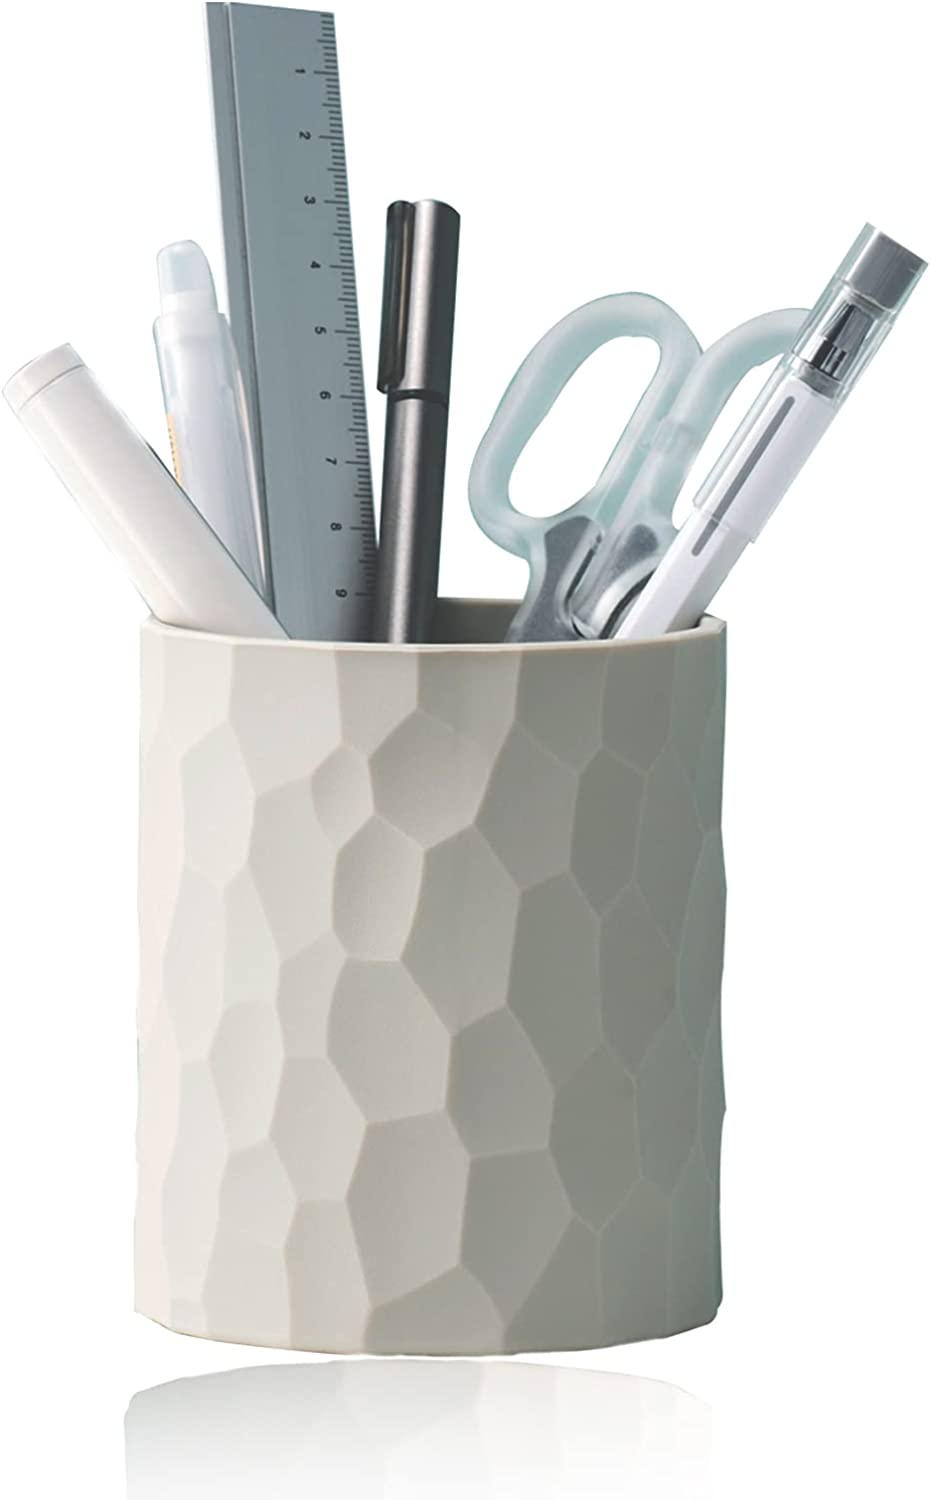 Pen Holder,Nordic Style Silicone Waterproof Pencil Holder for Desk Simple&Modern Minimalist Makeup Organizer Multifunctional Office Storage for Home Back to School Supplies(Light grey)